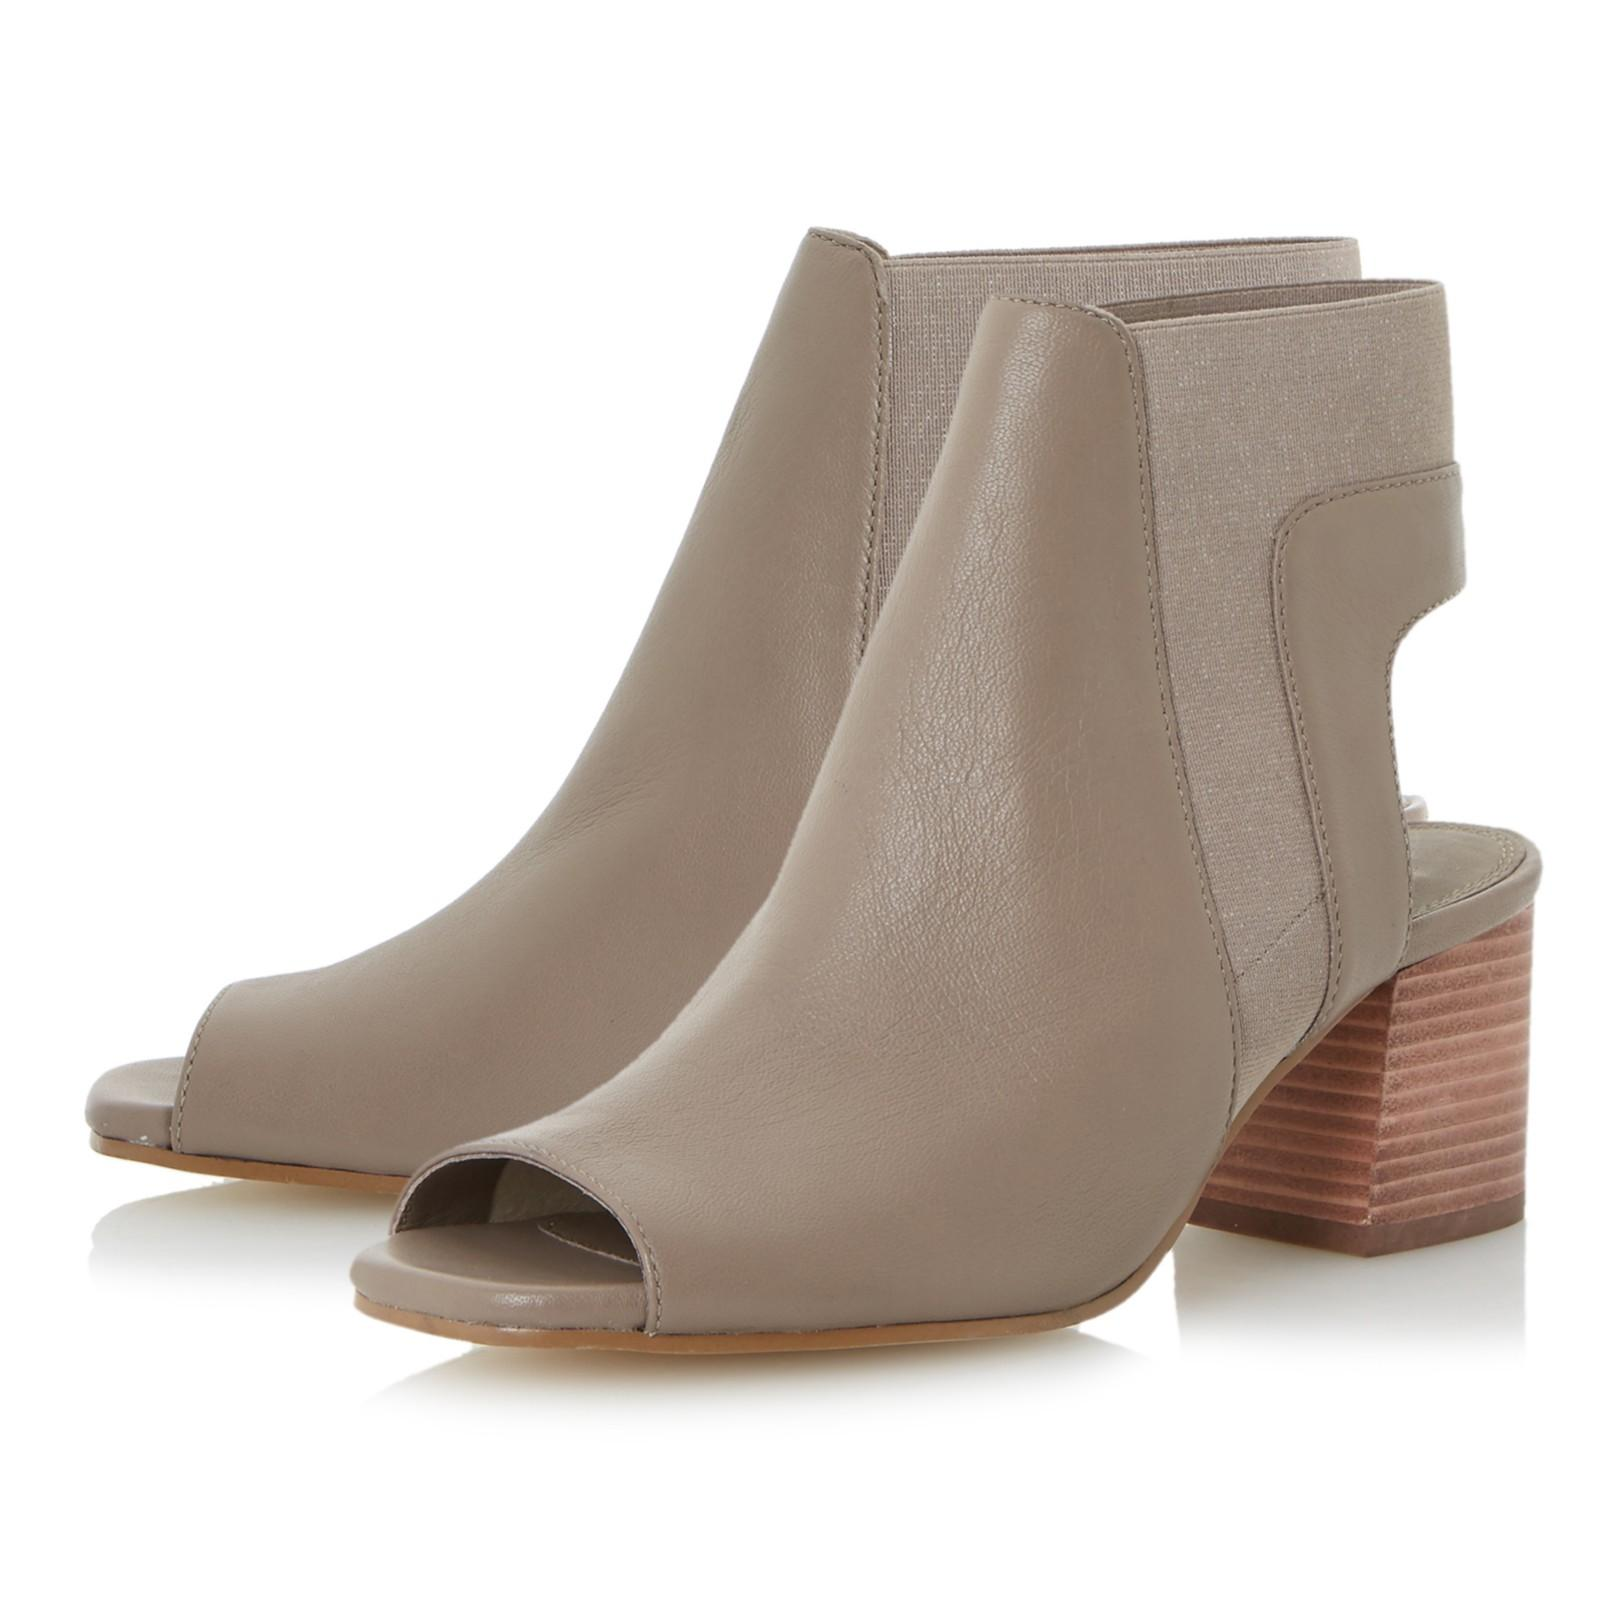 Dune Leather Jericho Block Heeled Sandals in Taupe (Brown)